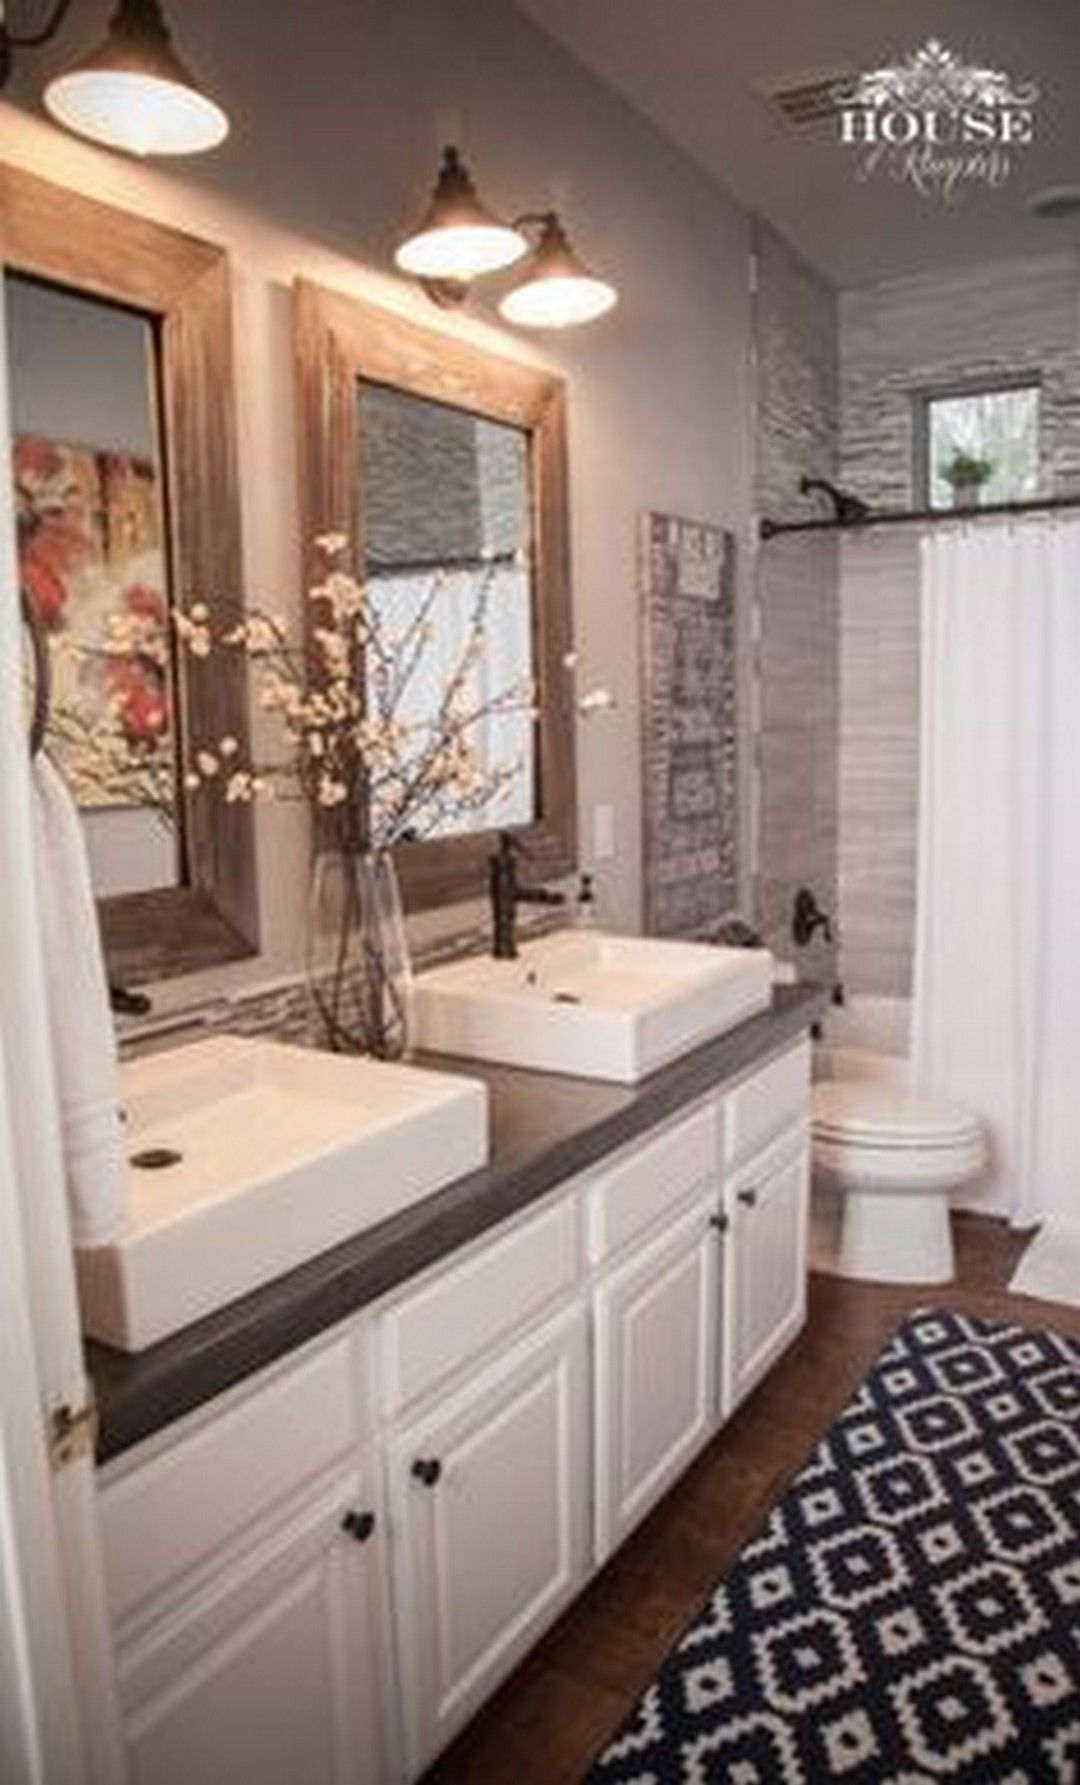 Awesome 99 Beautiful Urban Farmhouse Master Bathroom Remodel  Http://www.99architecture.